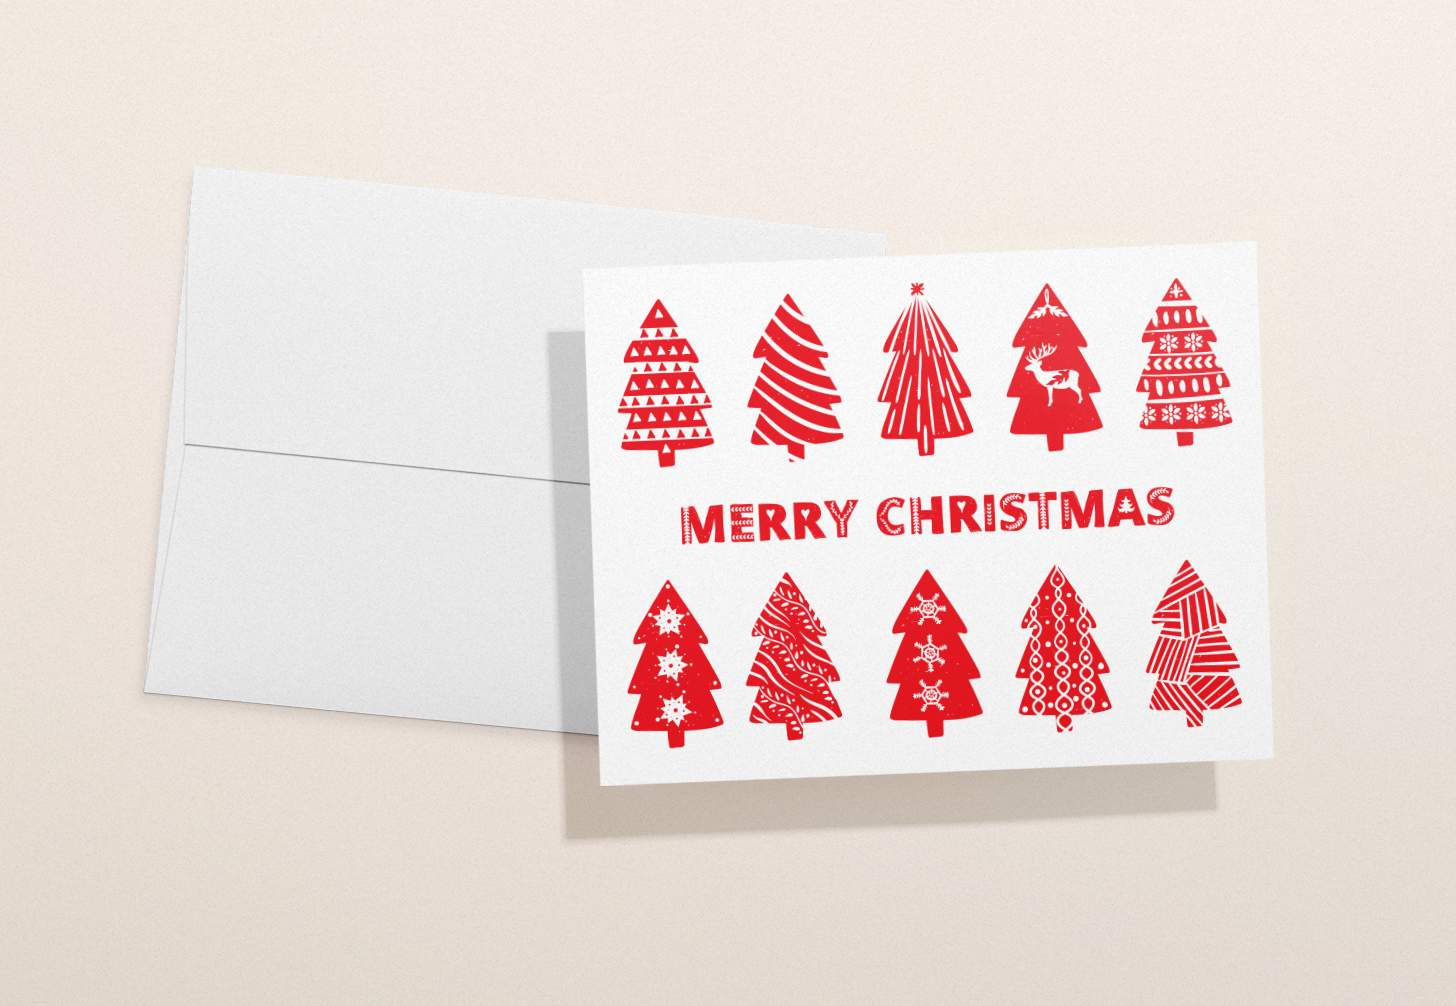 Red and white Christmas card with trees and white envelope